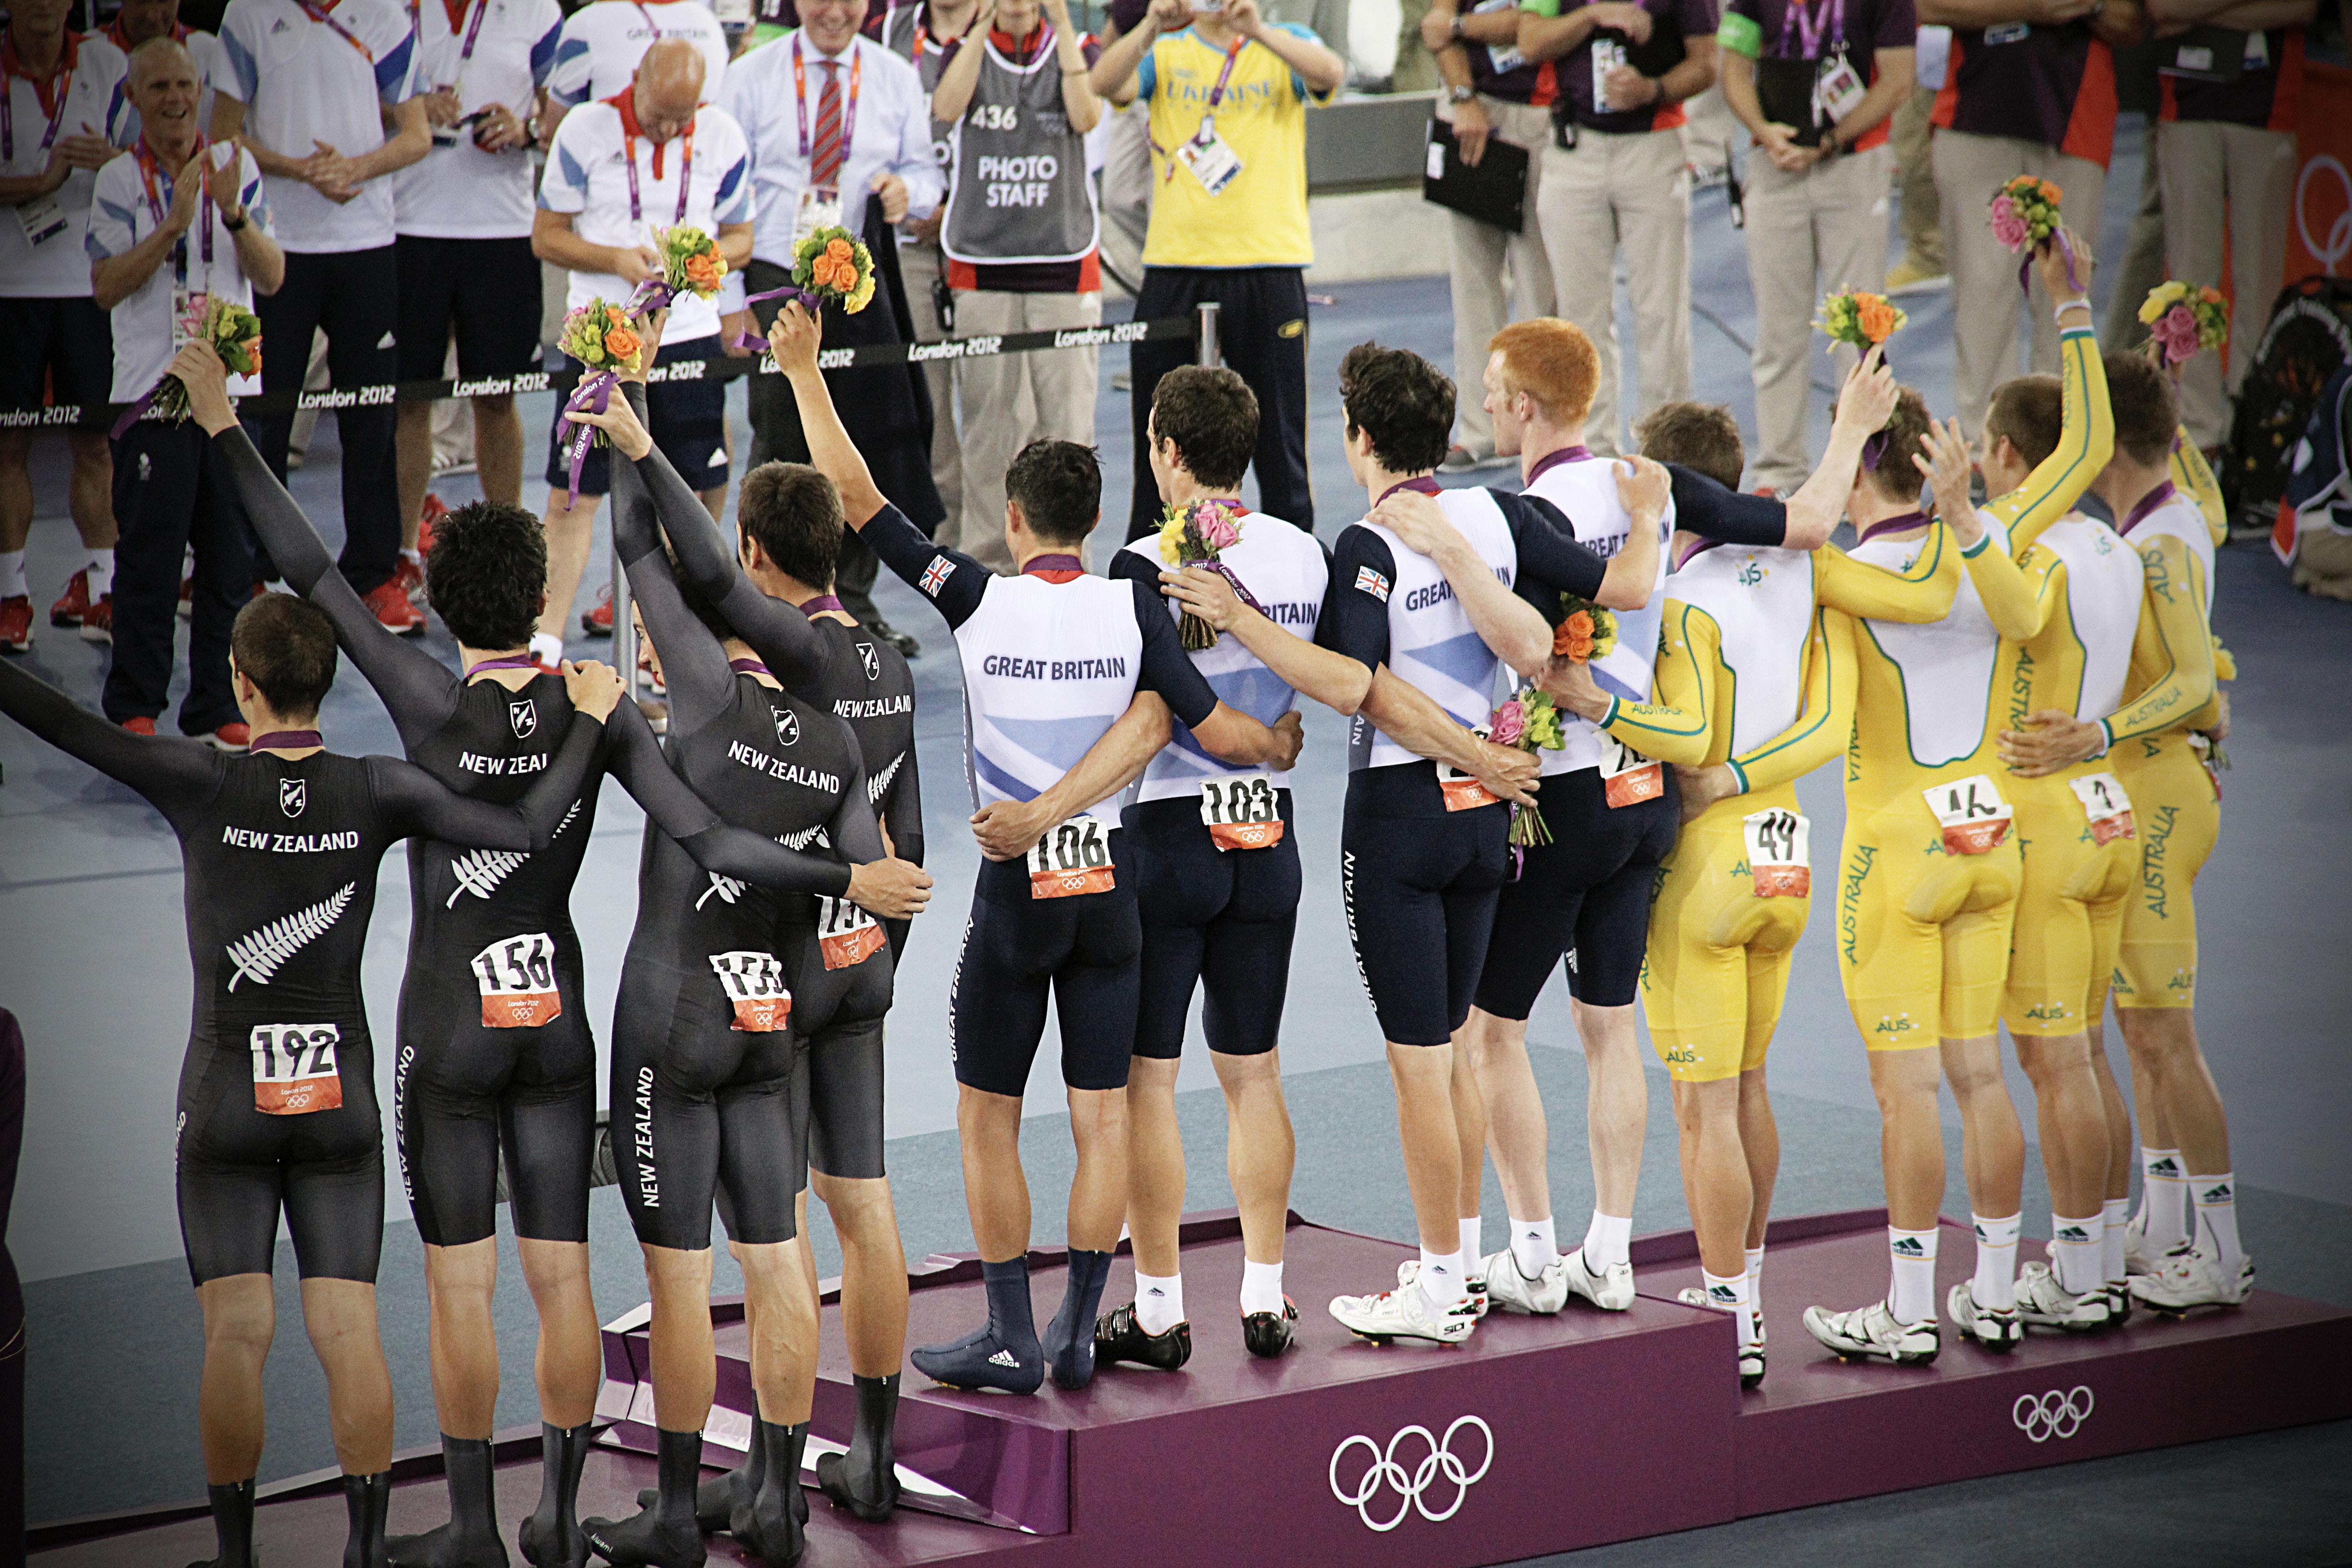 An image of sports winners standng on a podium. We believe that if you website translation for your food and drink exports, you can get 'first place' ahead of your competition.